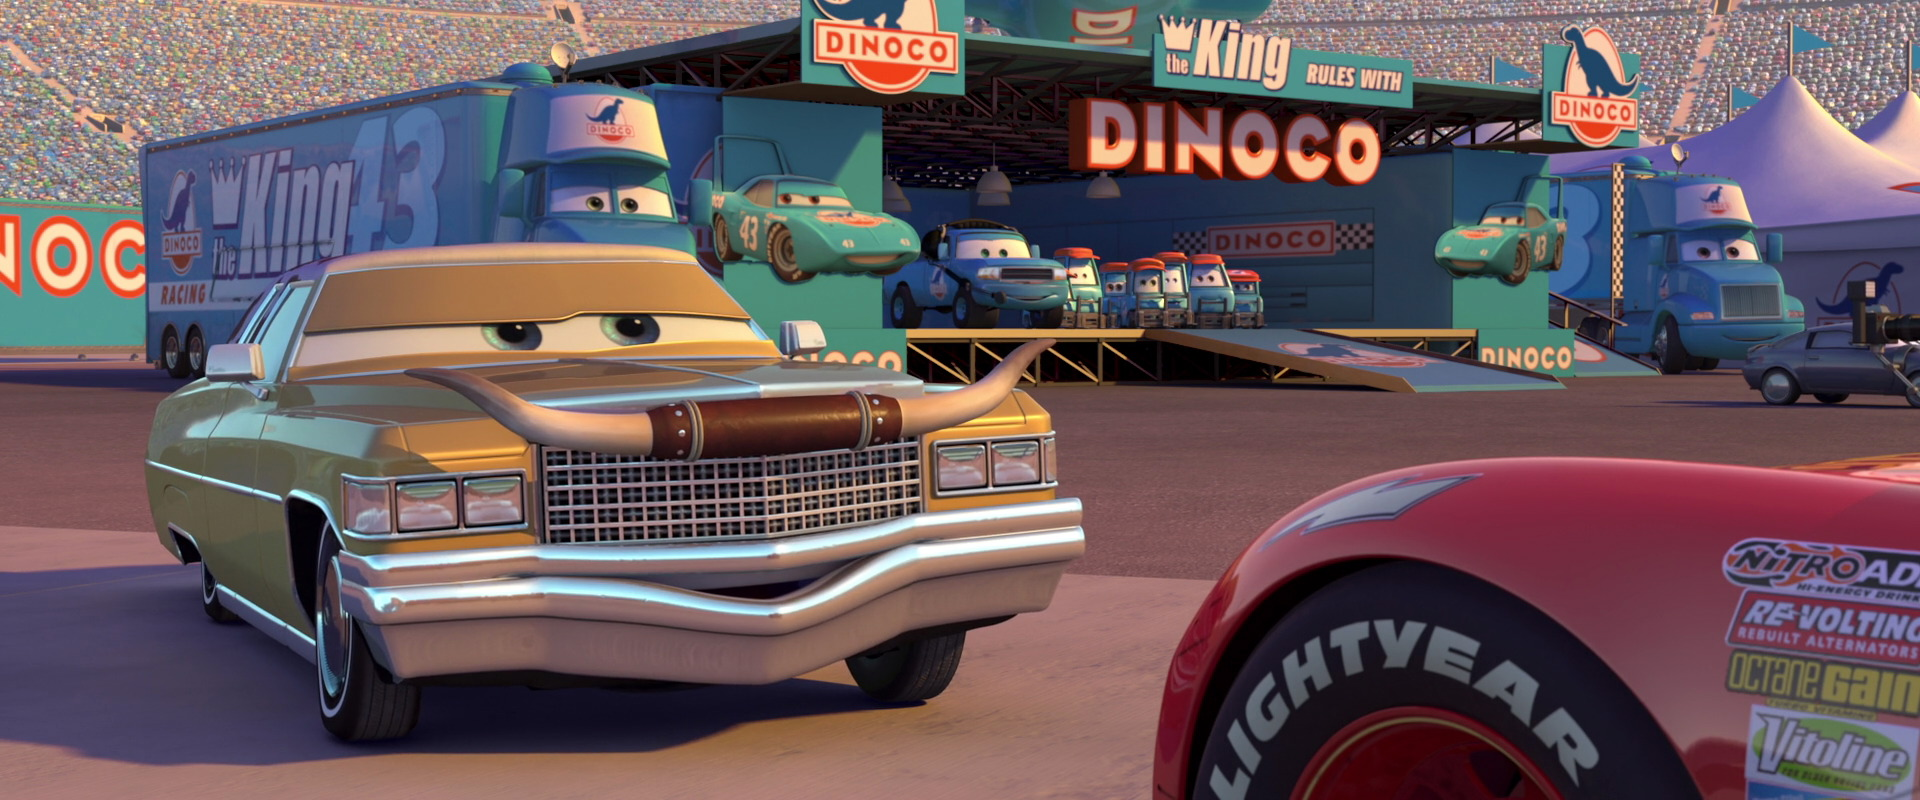 tex dinoco personnage character pixar disney cars